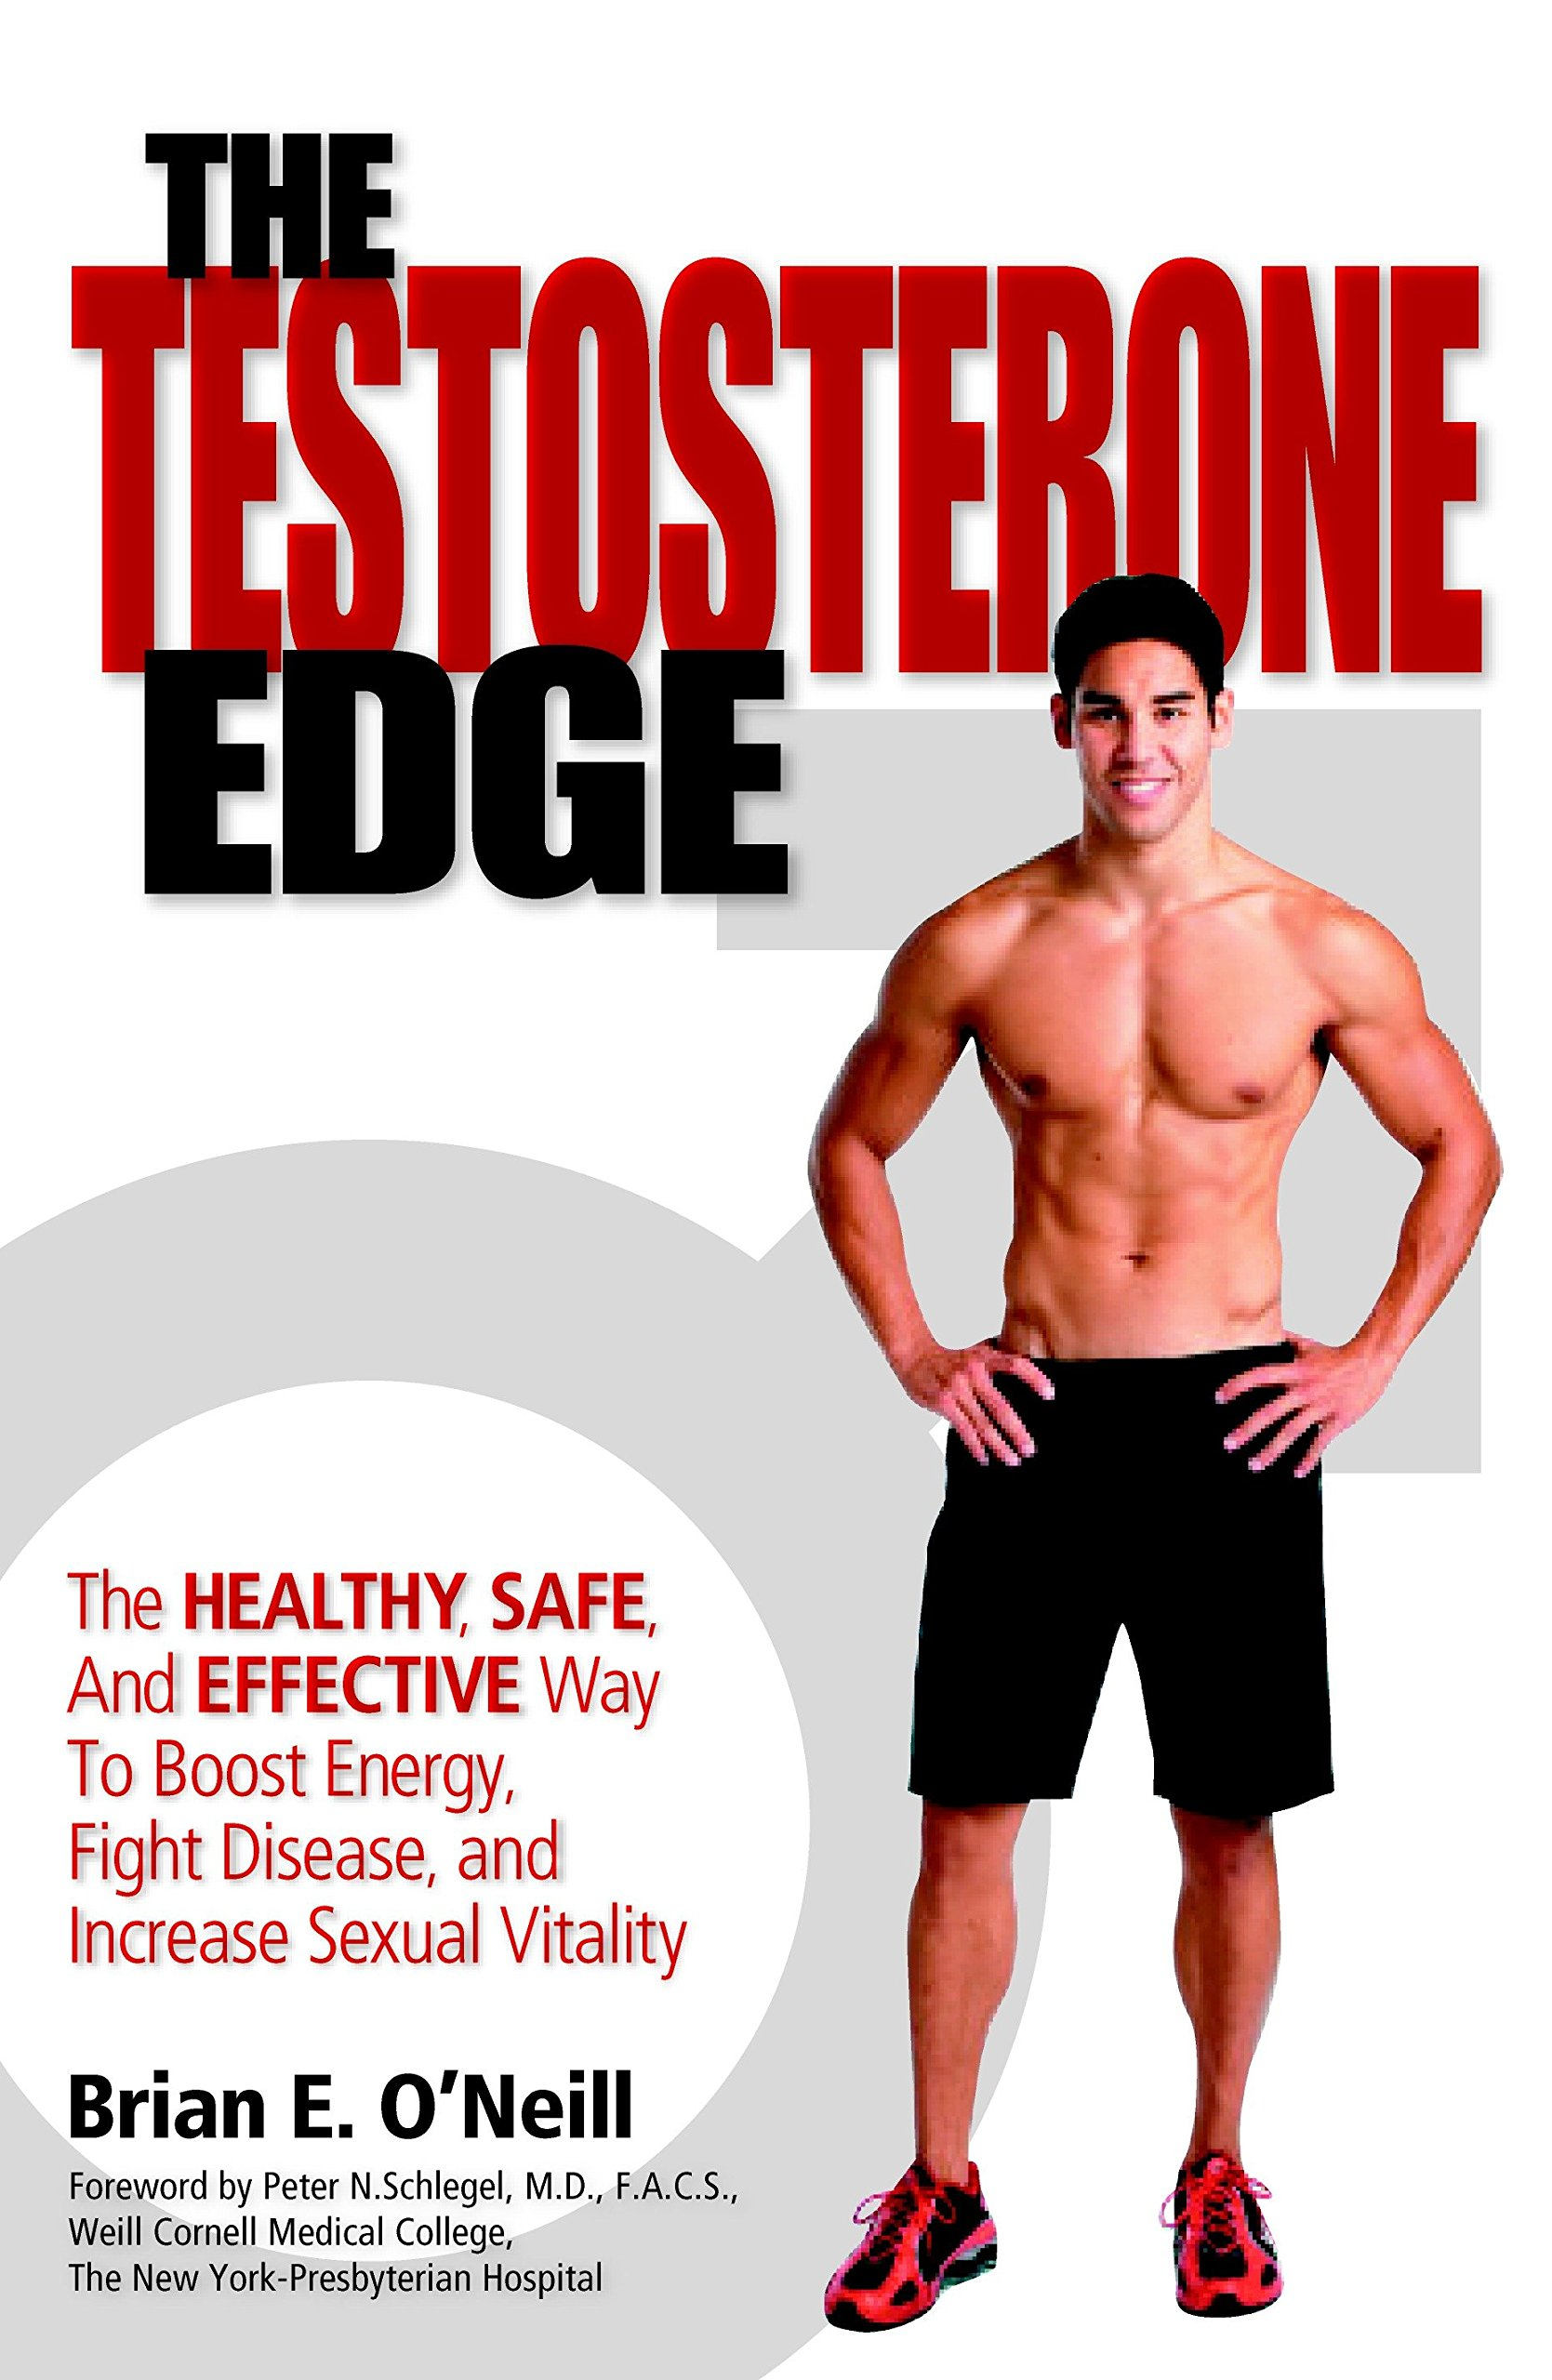 Does being sexually active increase testosterone